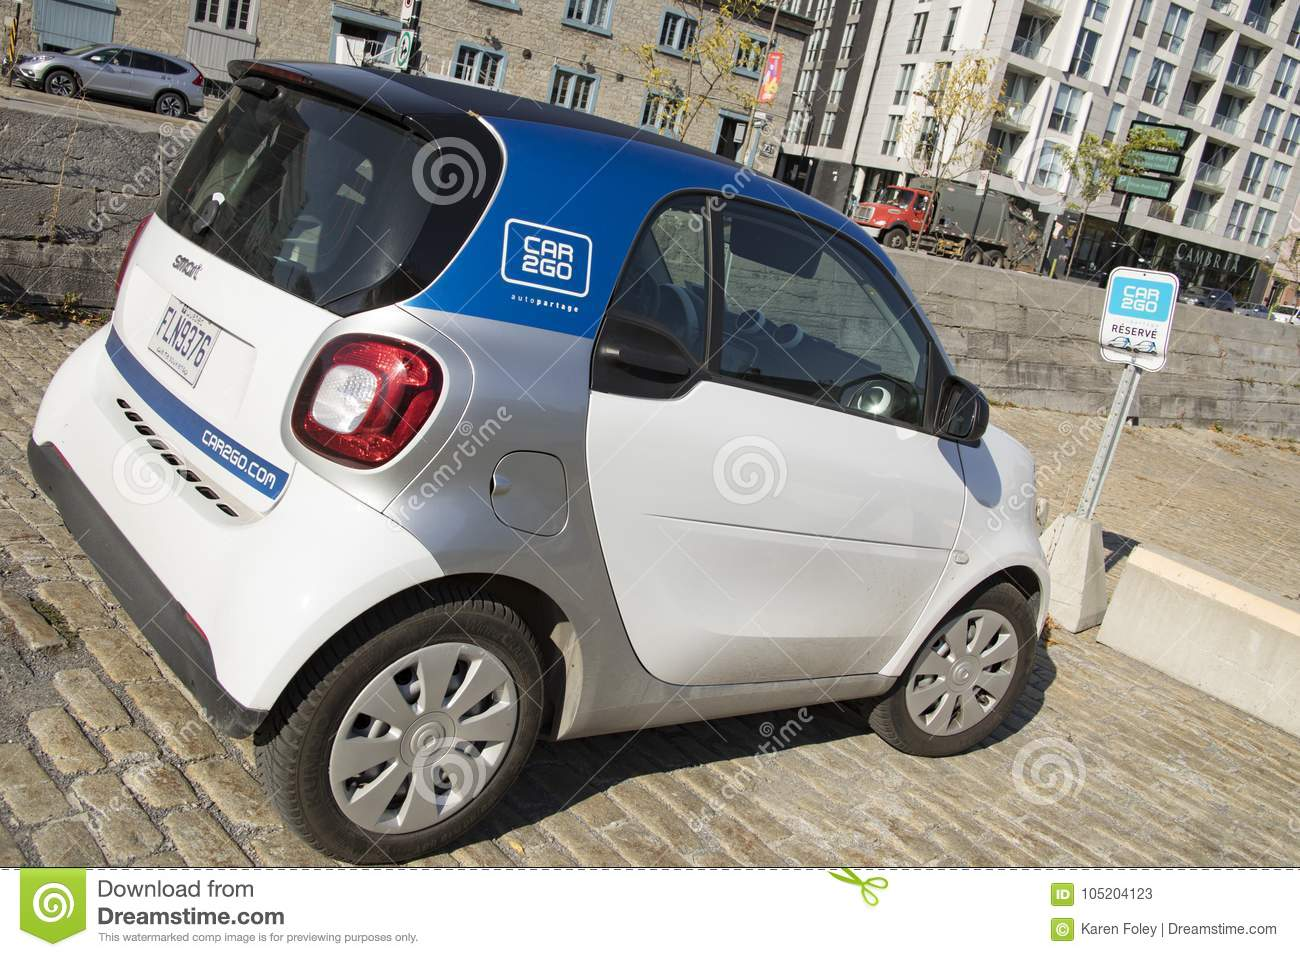 Car2go Photos Free Royalty Free Stock Photos From Dreamstime